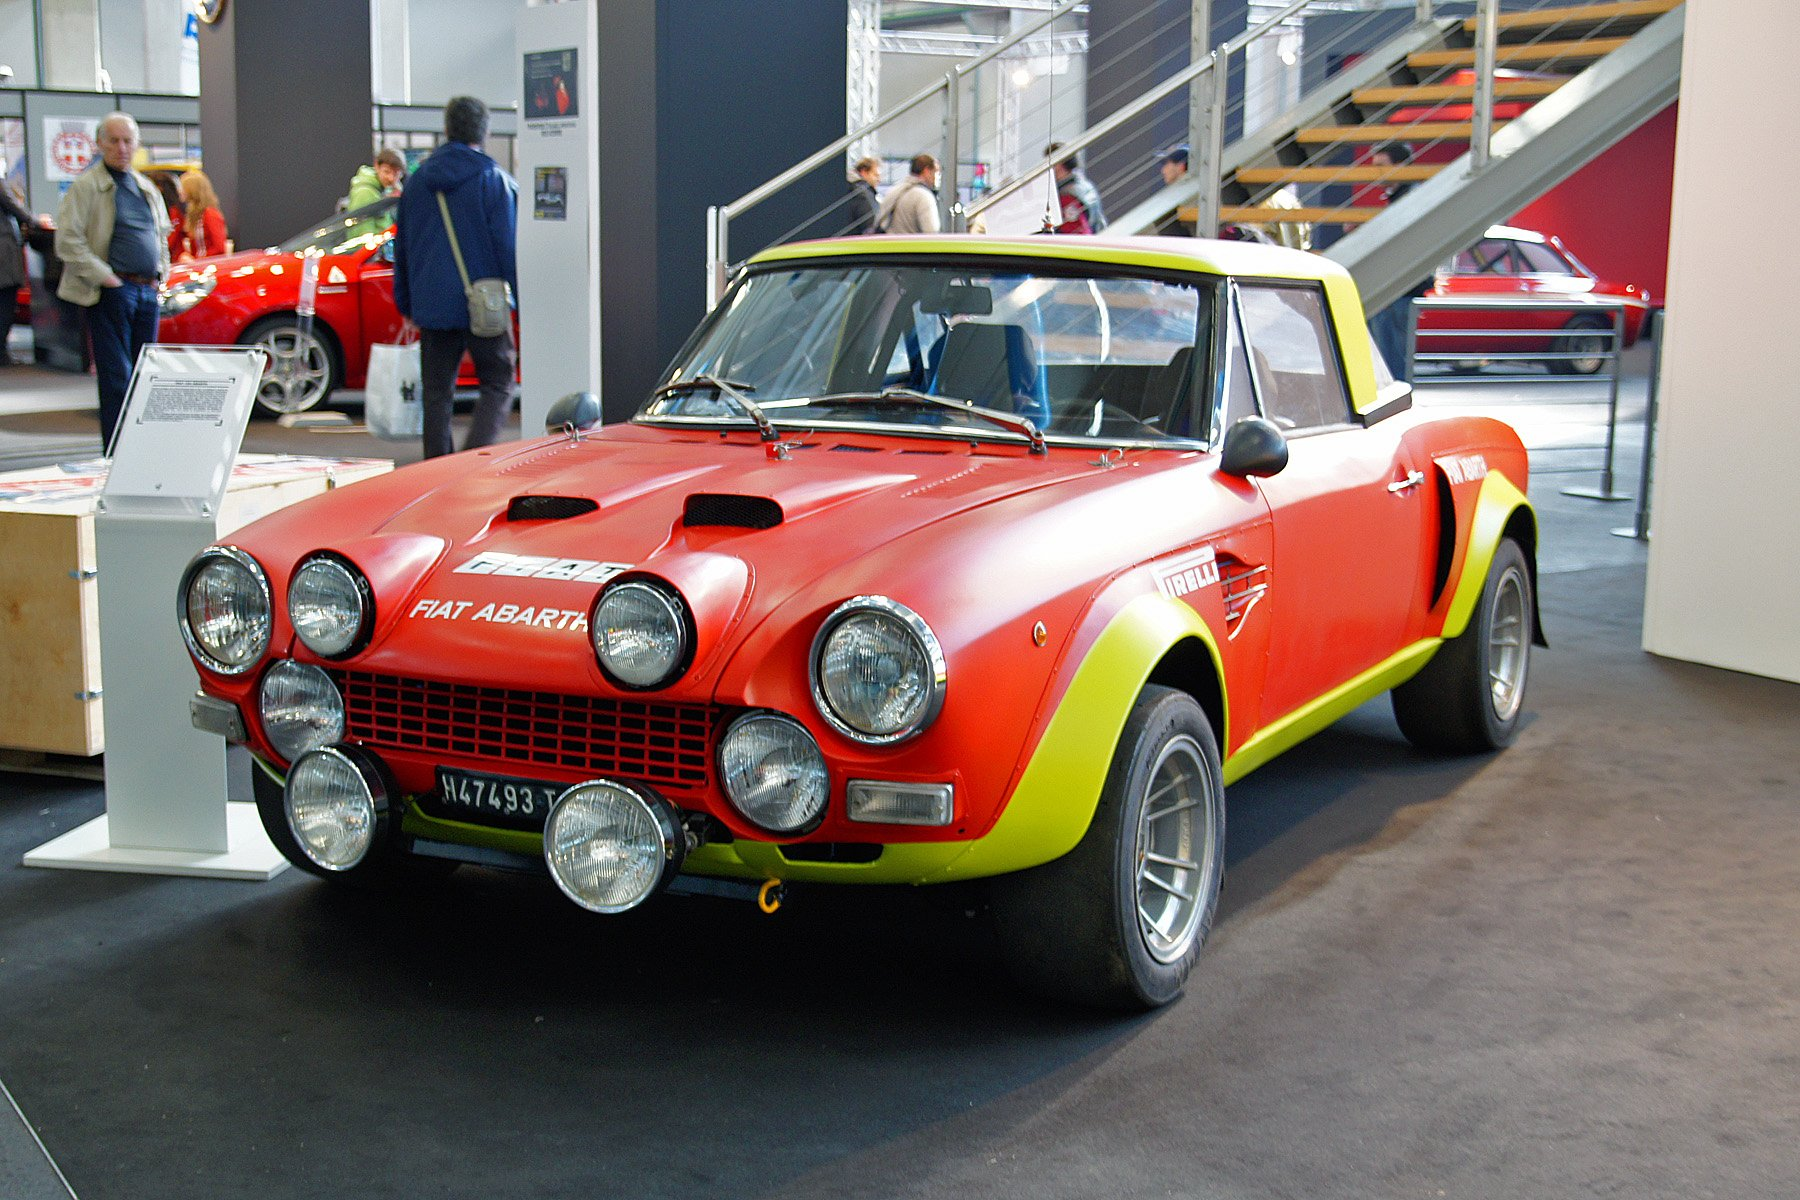 Fiat 124 Abarth Rally Cars Wallpaper 1800x1200 605853 Wallpaperup